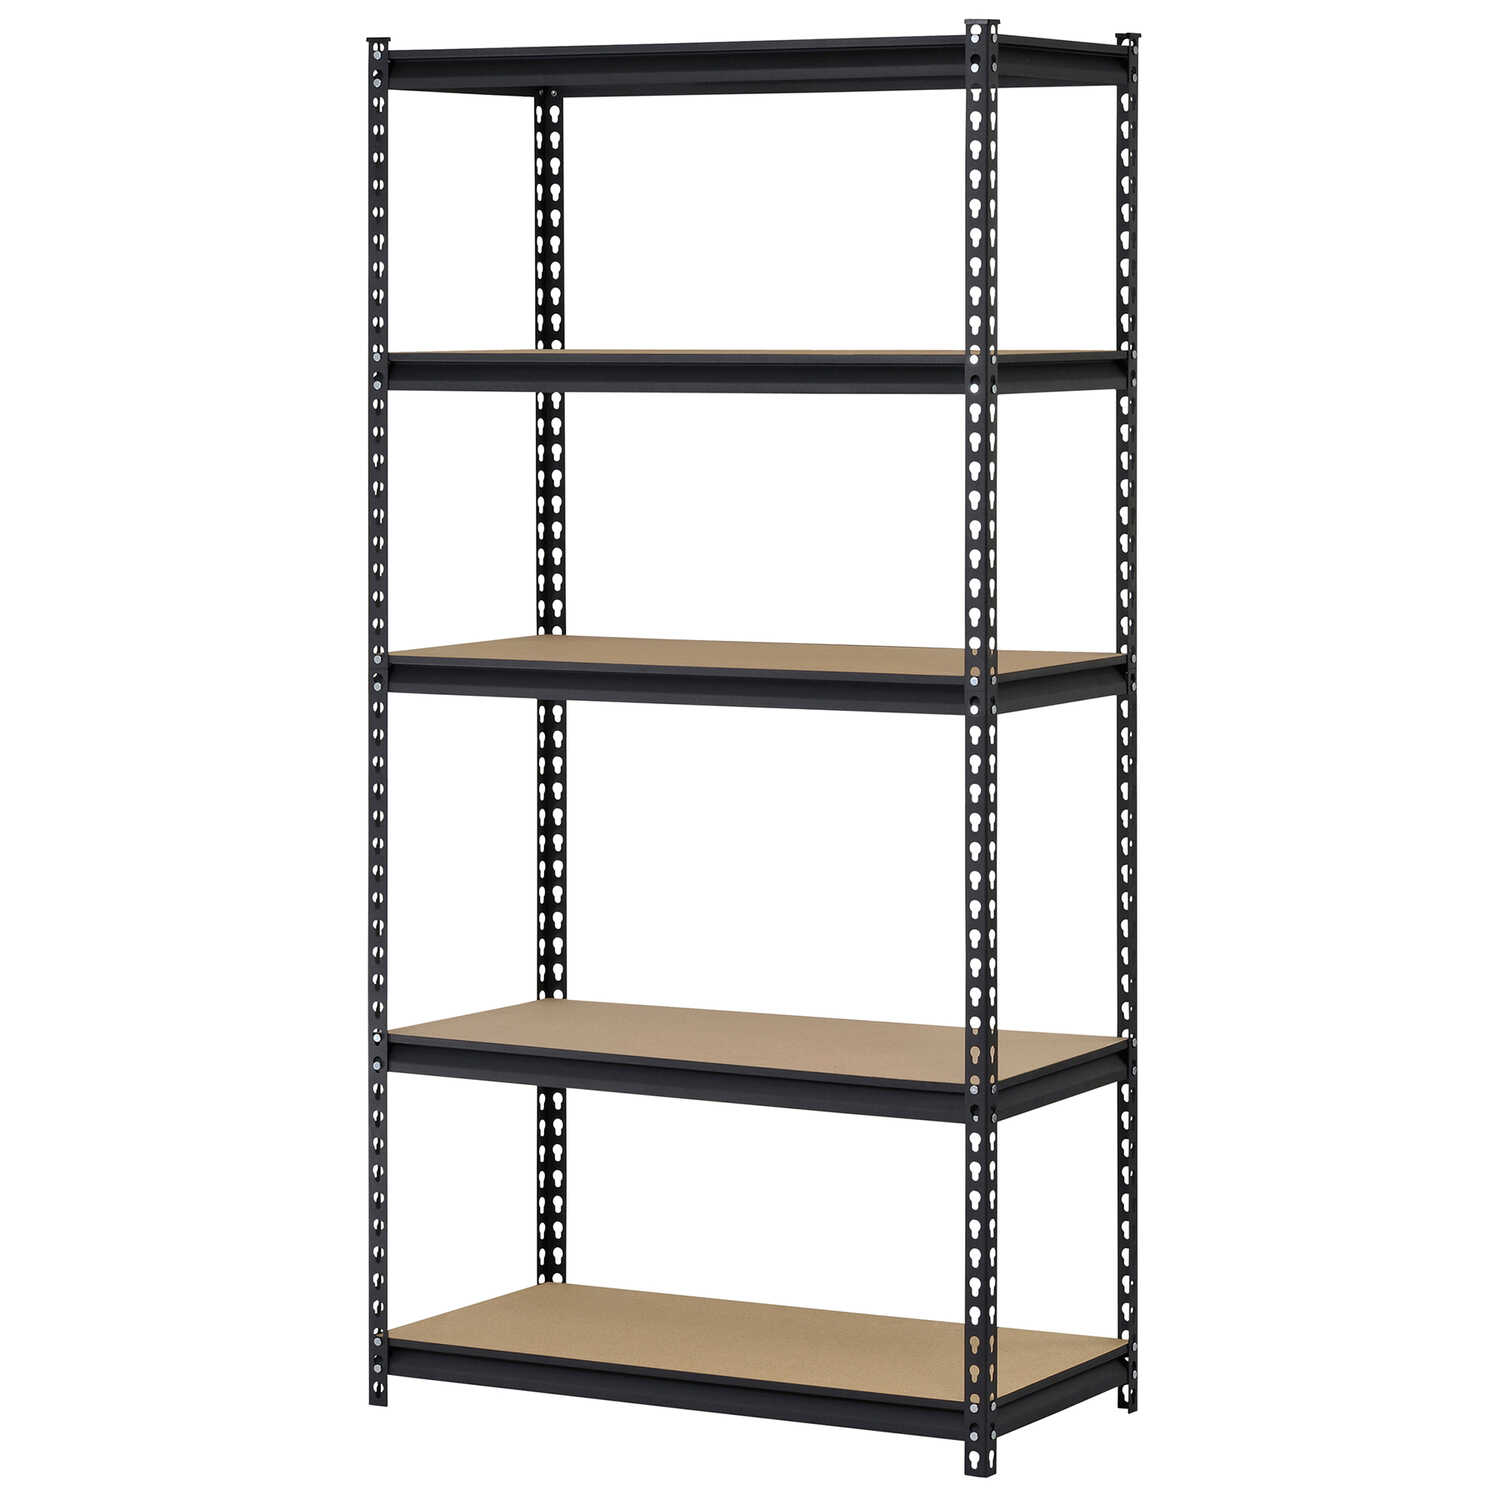 Casa Solutions  36 in. W x 72 in. H x 18 in. D Steel  Shelving Unit